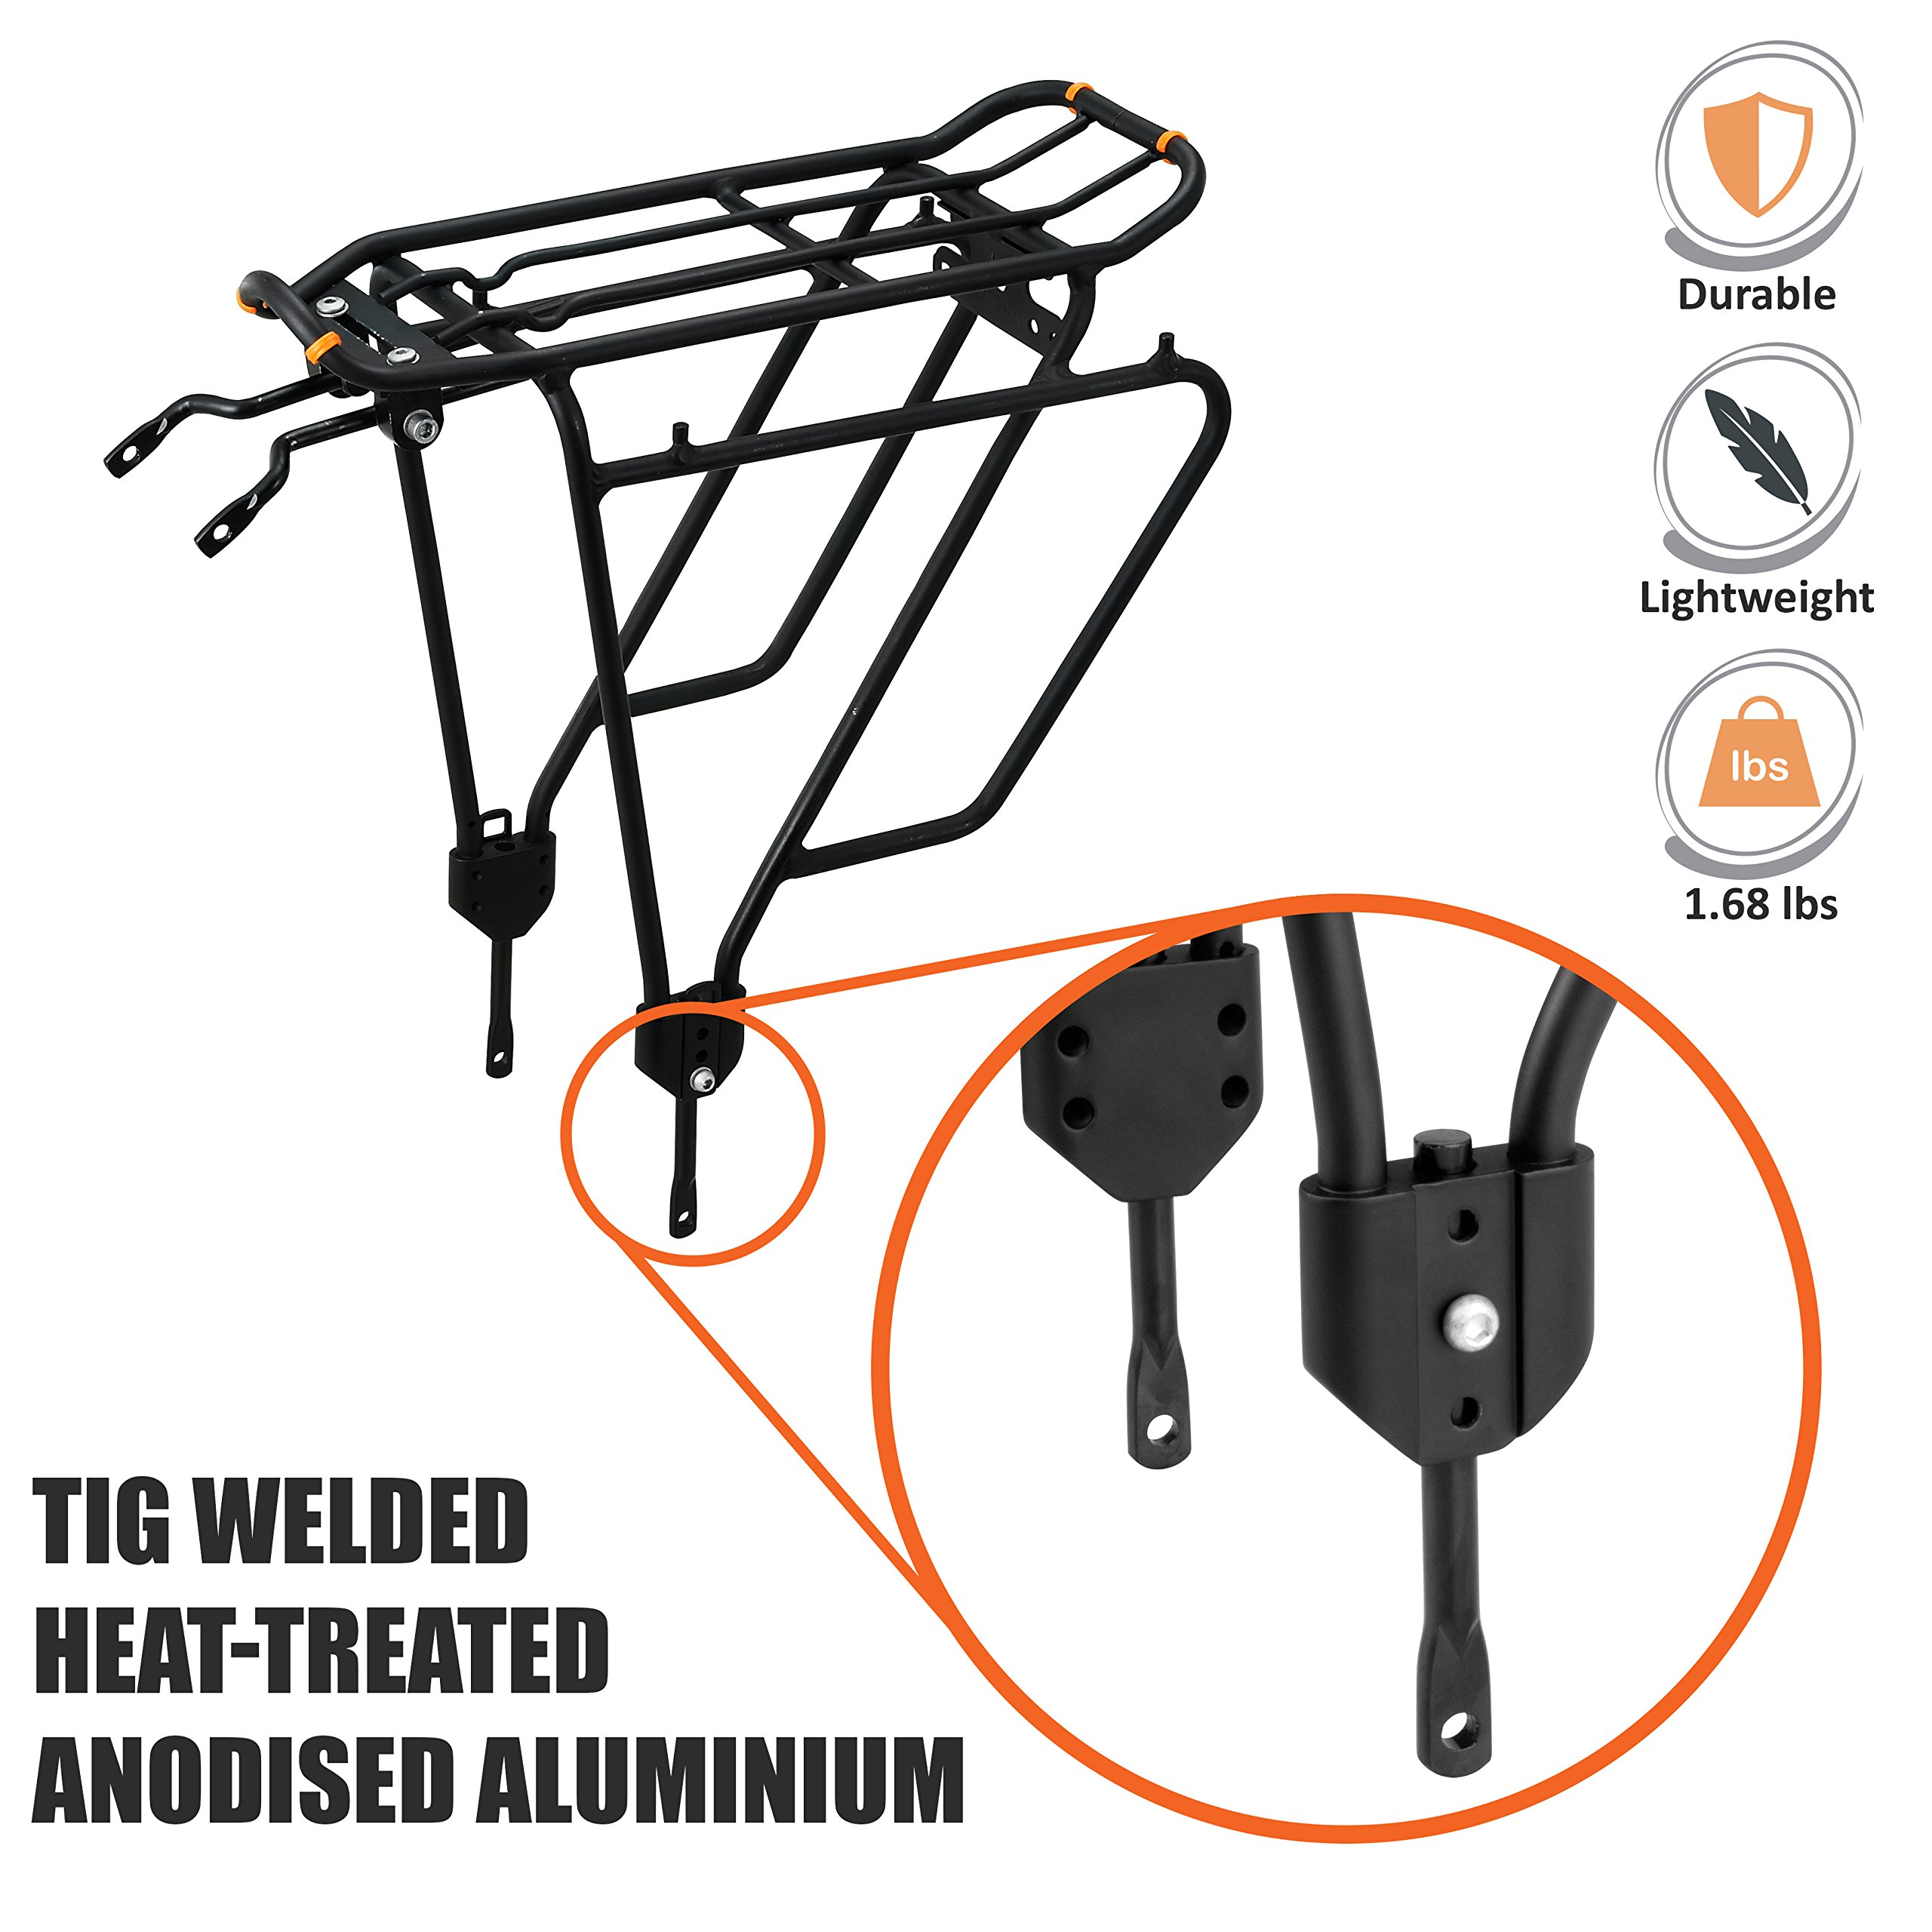 Ibera Bike Rack - Bicycle Touring Carrier Plus+ for Non-Disc Brake Mount, Frame-Mounted for Heavier Top & Side Loads, Height Adjustable for 26''-29'' Frames by Ibera (Image #2)